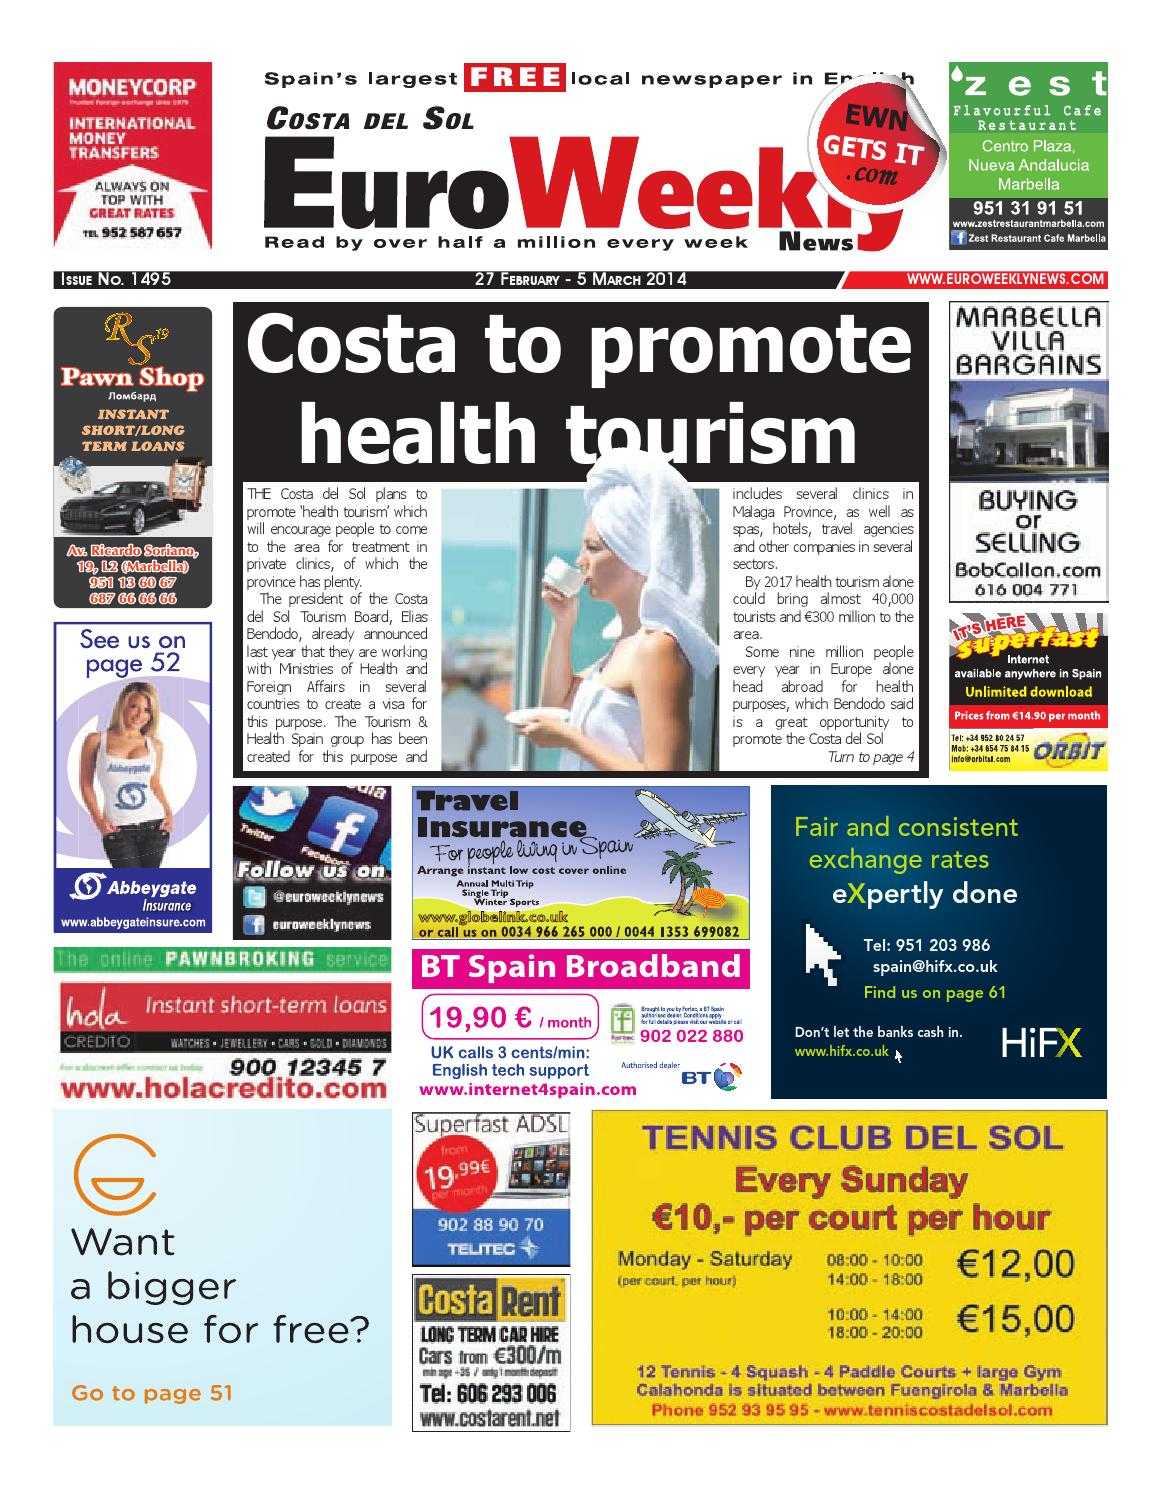 Euro Weekly News - Costa del Sol 27 February - 5 March 2014 Issue 1495 by  Euro Weekly News Media S.A. - issuu